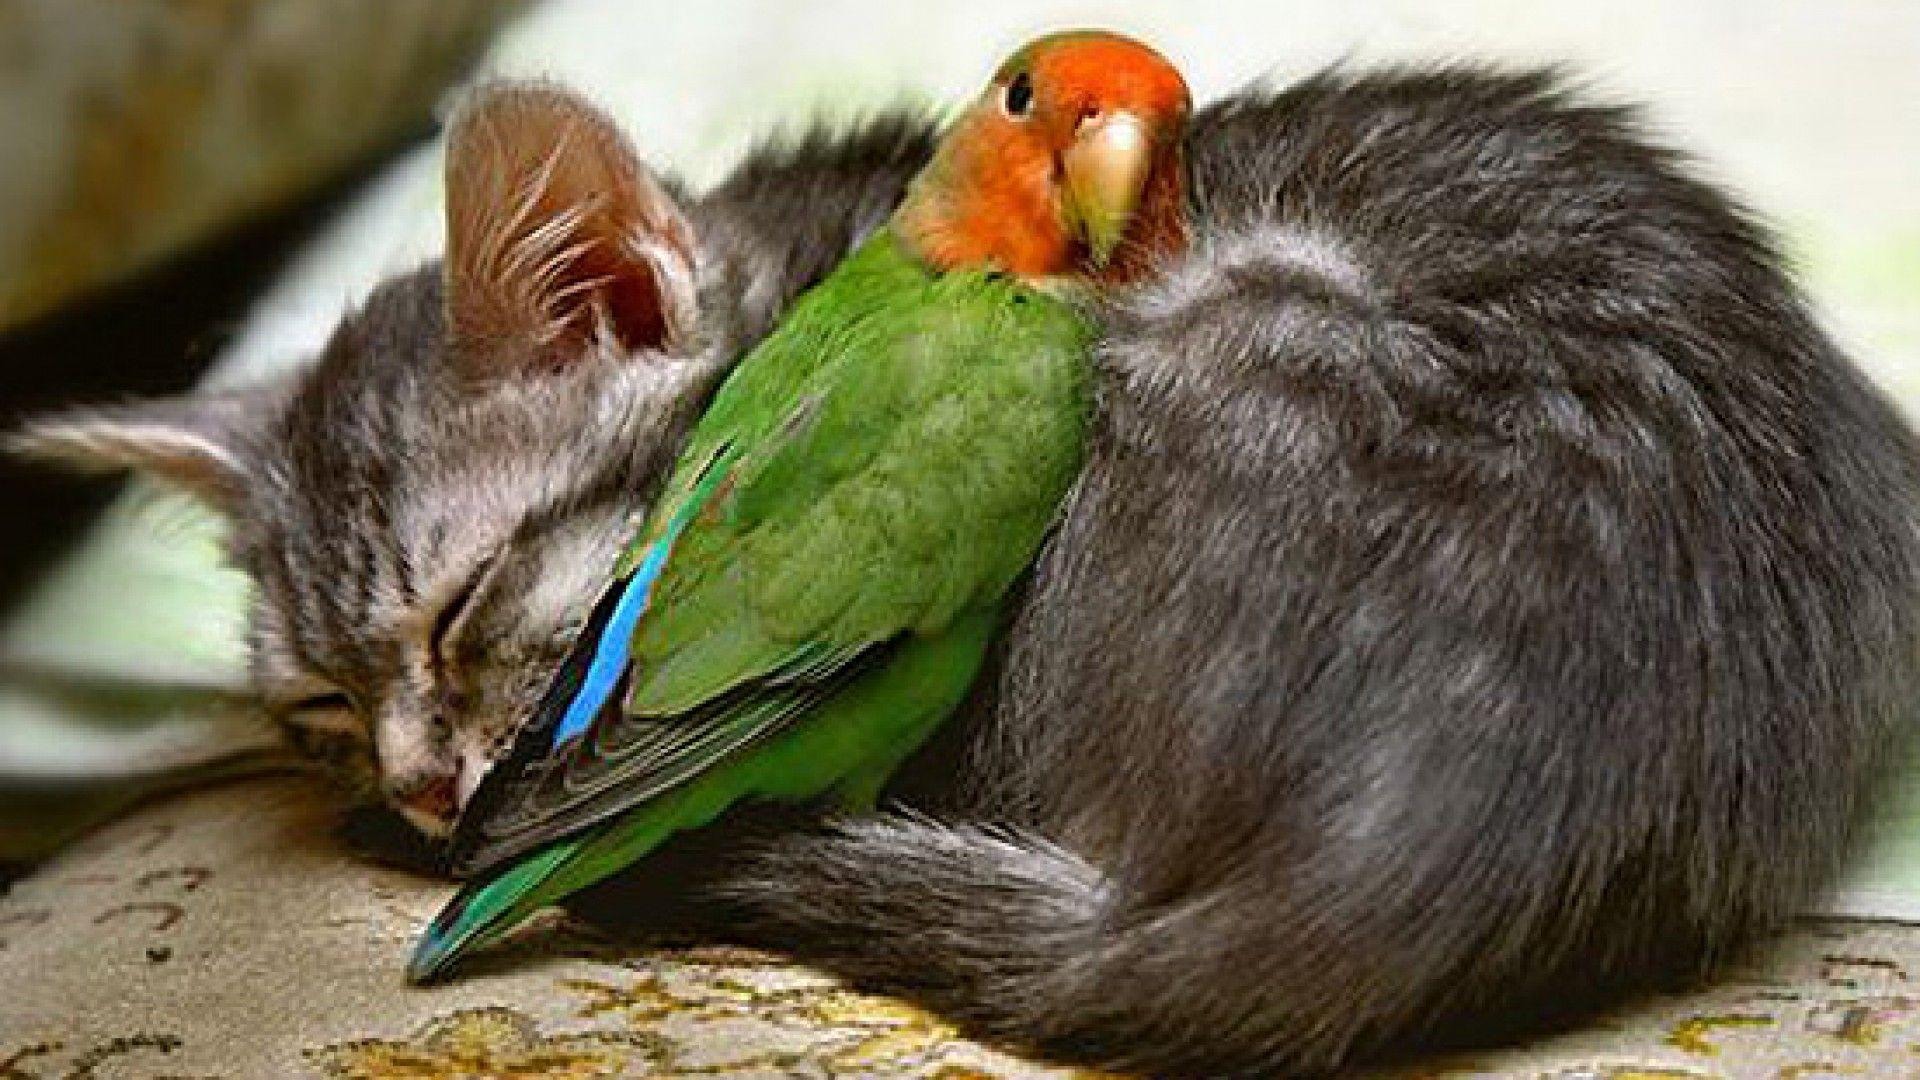 Wallpapers For > Hd Love Birds Wallpapers 1080p